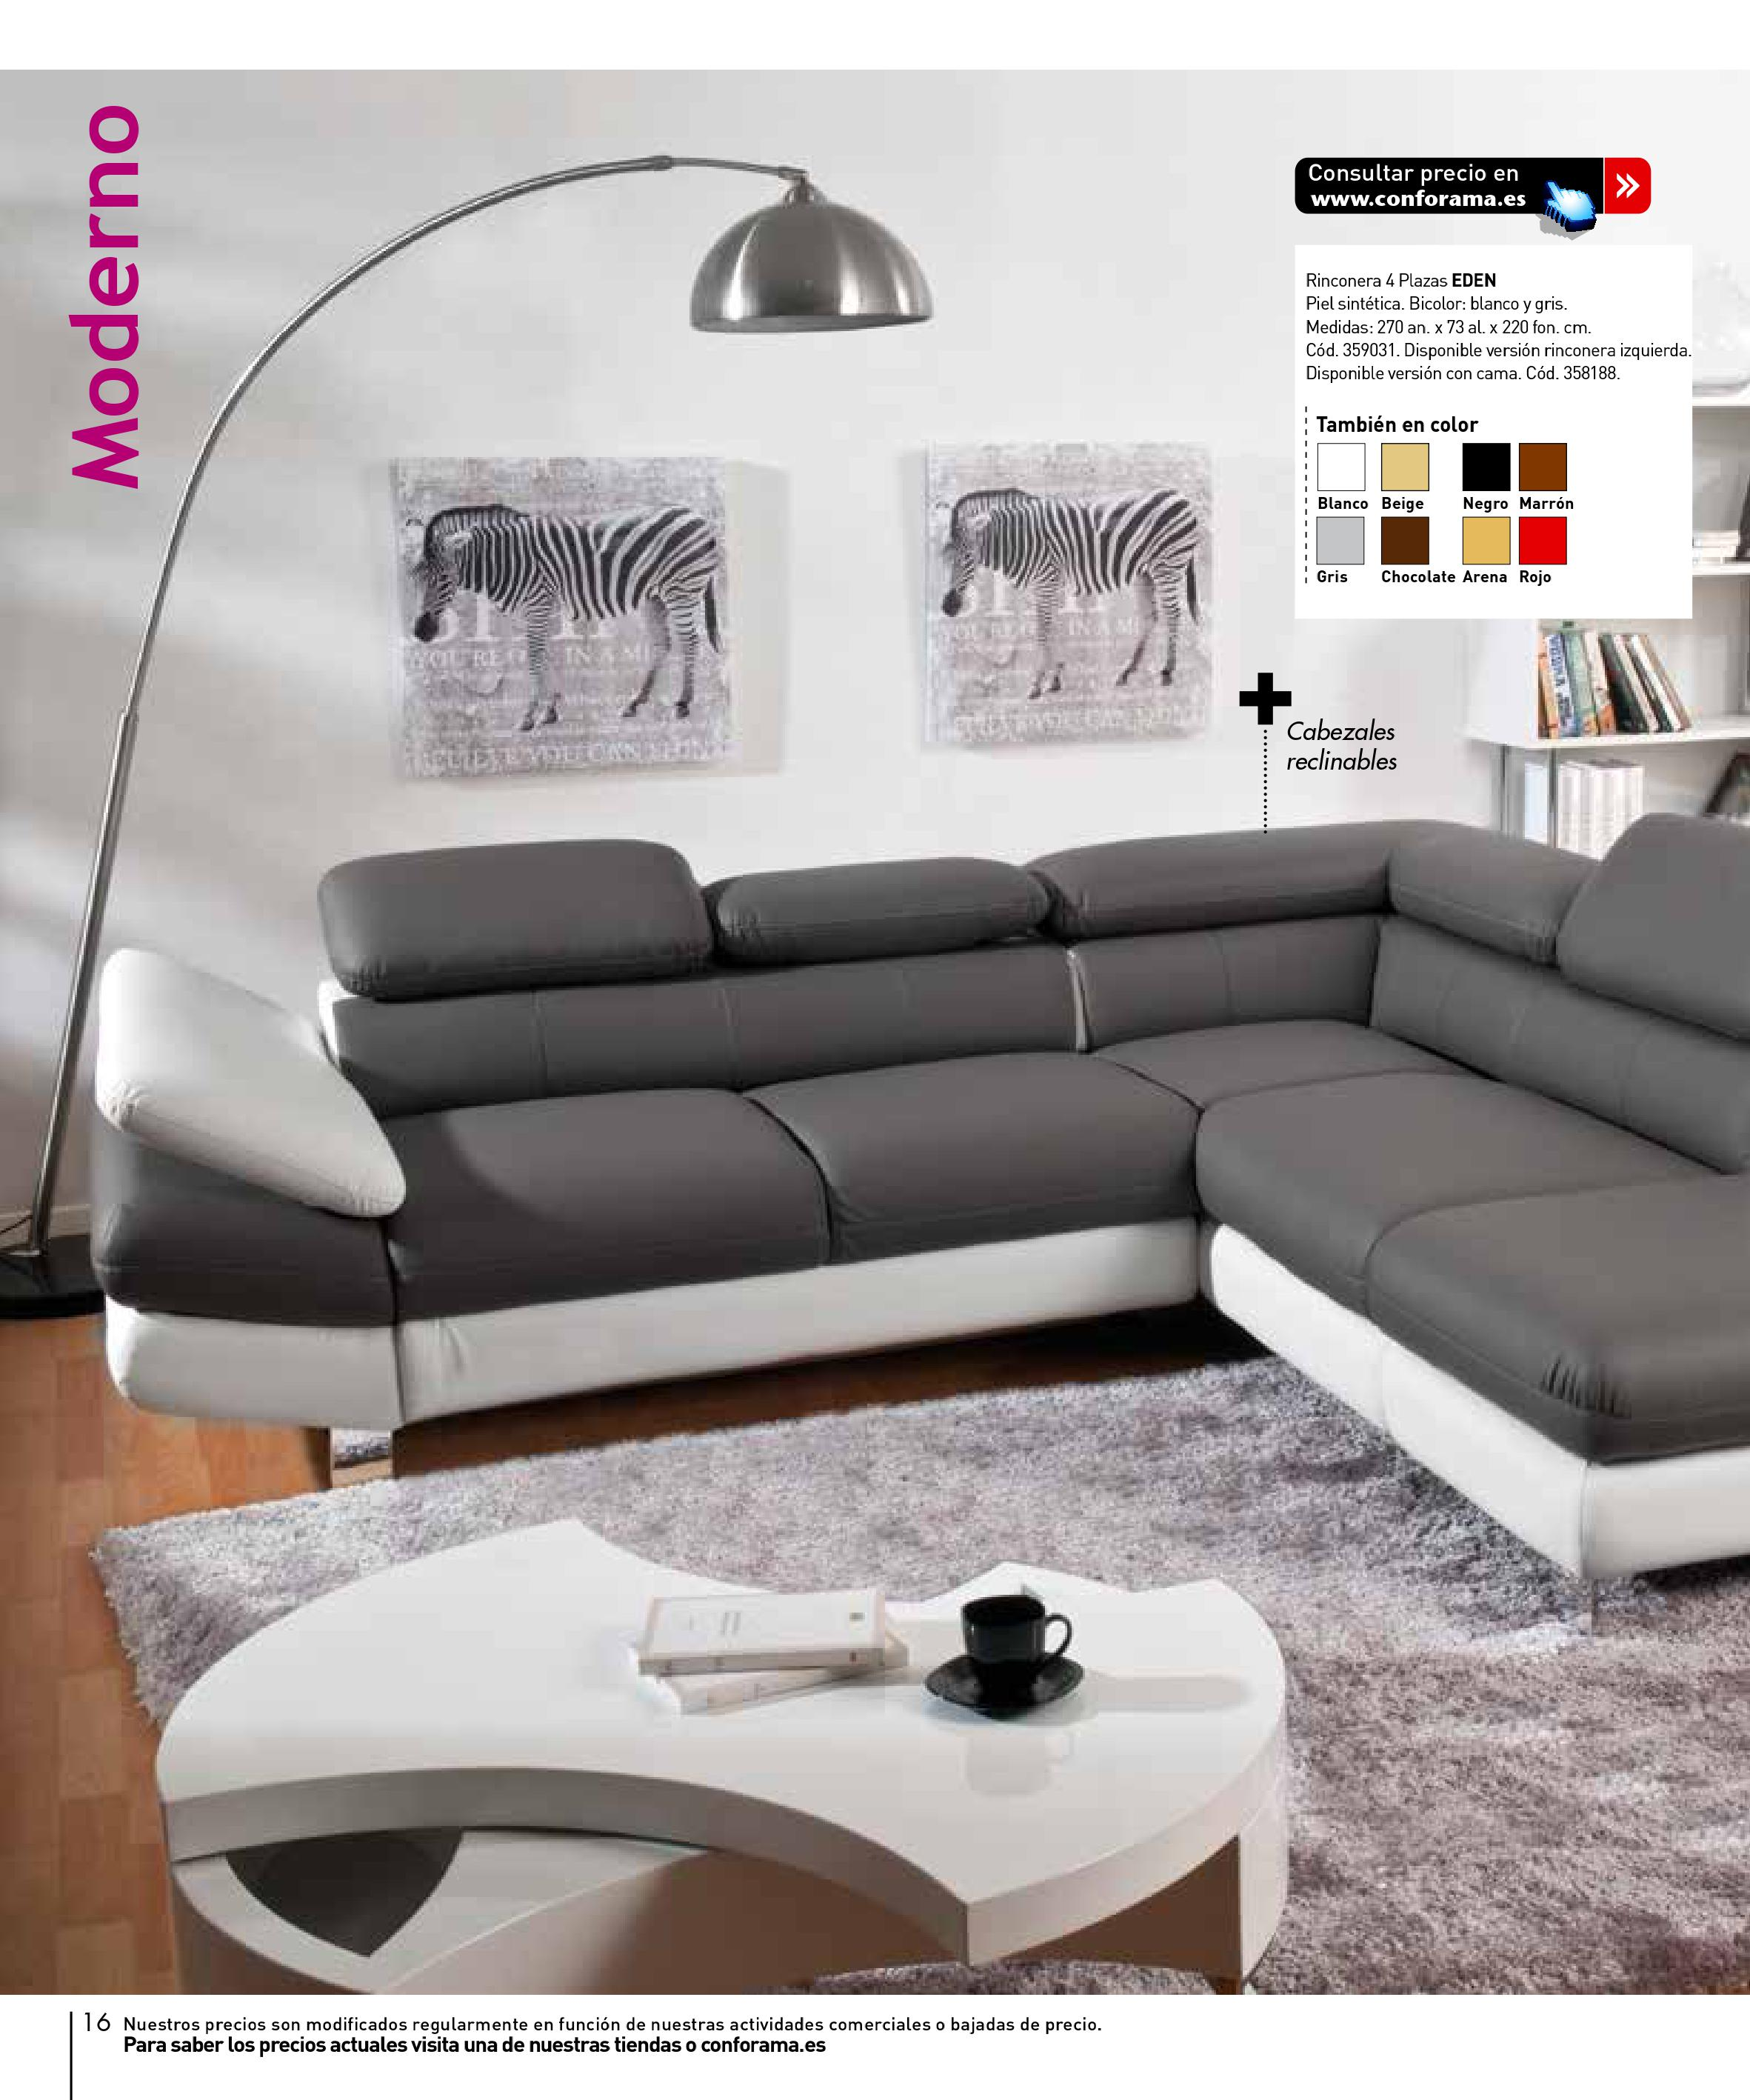 Sofas conforama 201516 for Sofas conforama catalogo